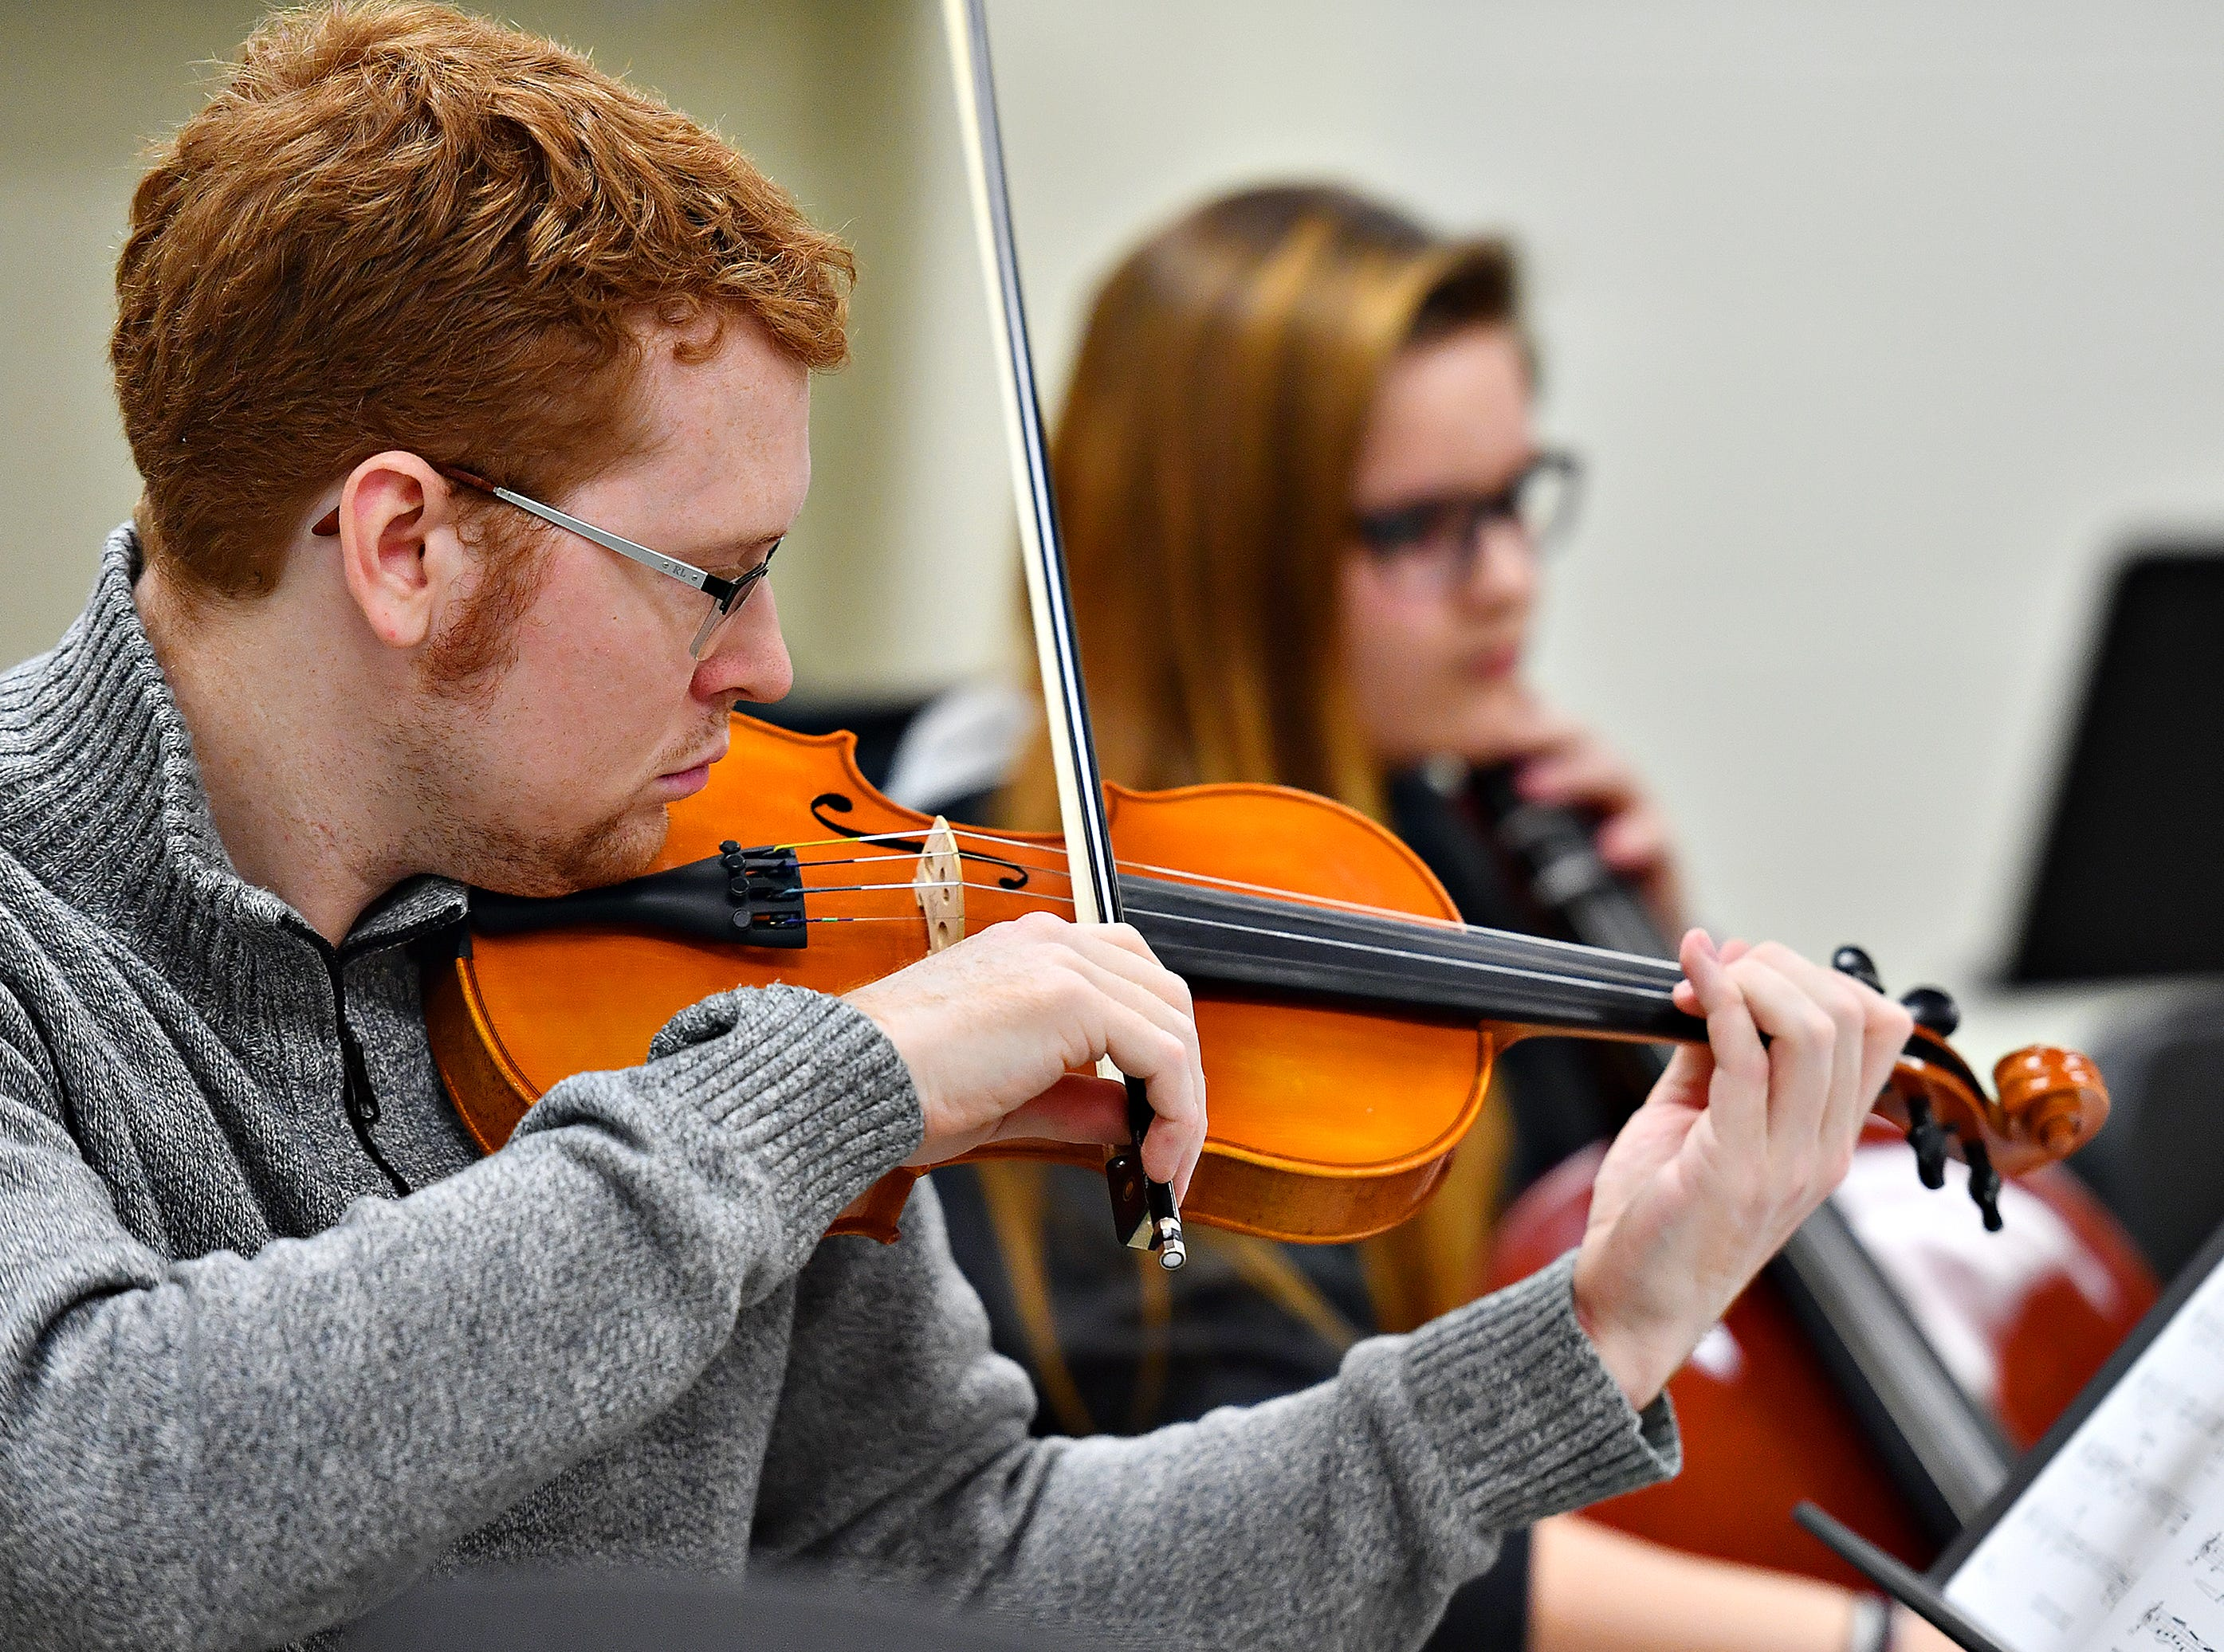 """Orchestra Director Scott Kaliszak, front, plays violin while student Kate Deery plays cello as a student ensemble works with Red Lion alumnus Derek Cooper, who is a working composer in New York, as they practice for their upcoming performance at Red Lion Area High School in Red Lion, Tuesday, March 5, 2019. The orchestra will debut Cooper's composition of """"Obsidian Rainbow"""" during their performance on March 6. Dawn J. Sagert photo"""